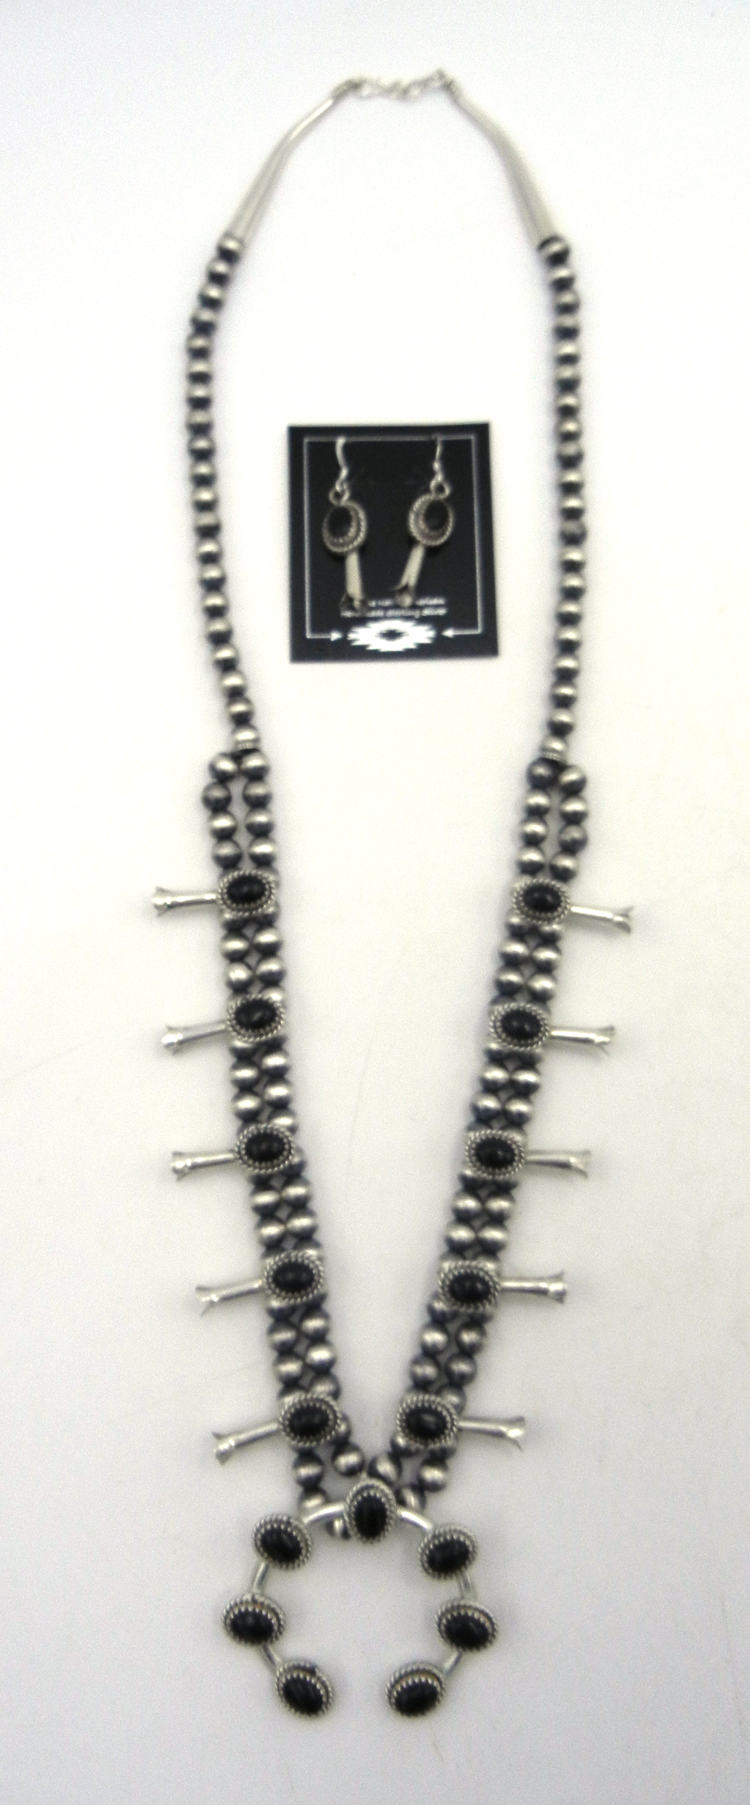 Navajo brushed sterling silver and onyx squash blossom necklace and earring set